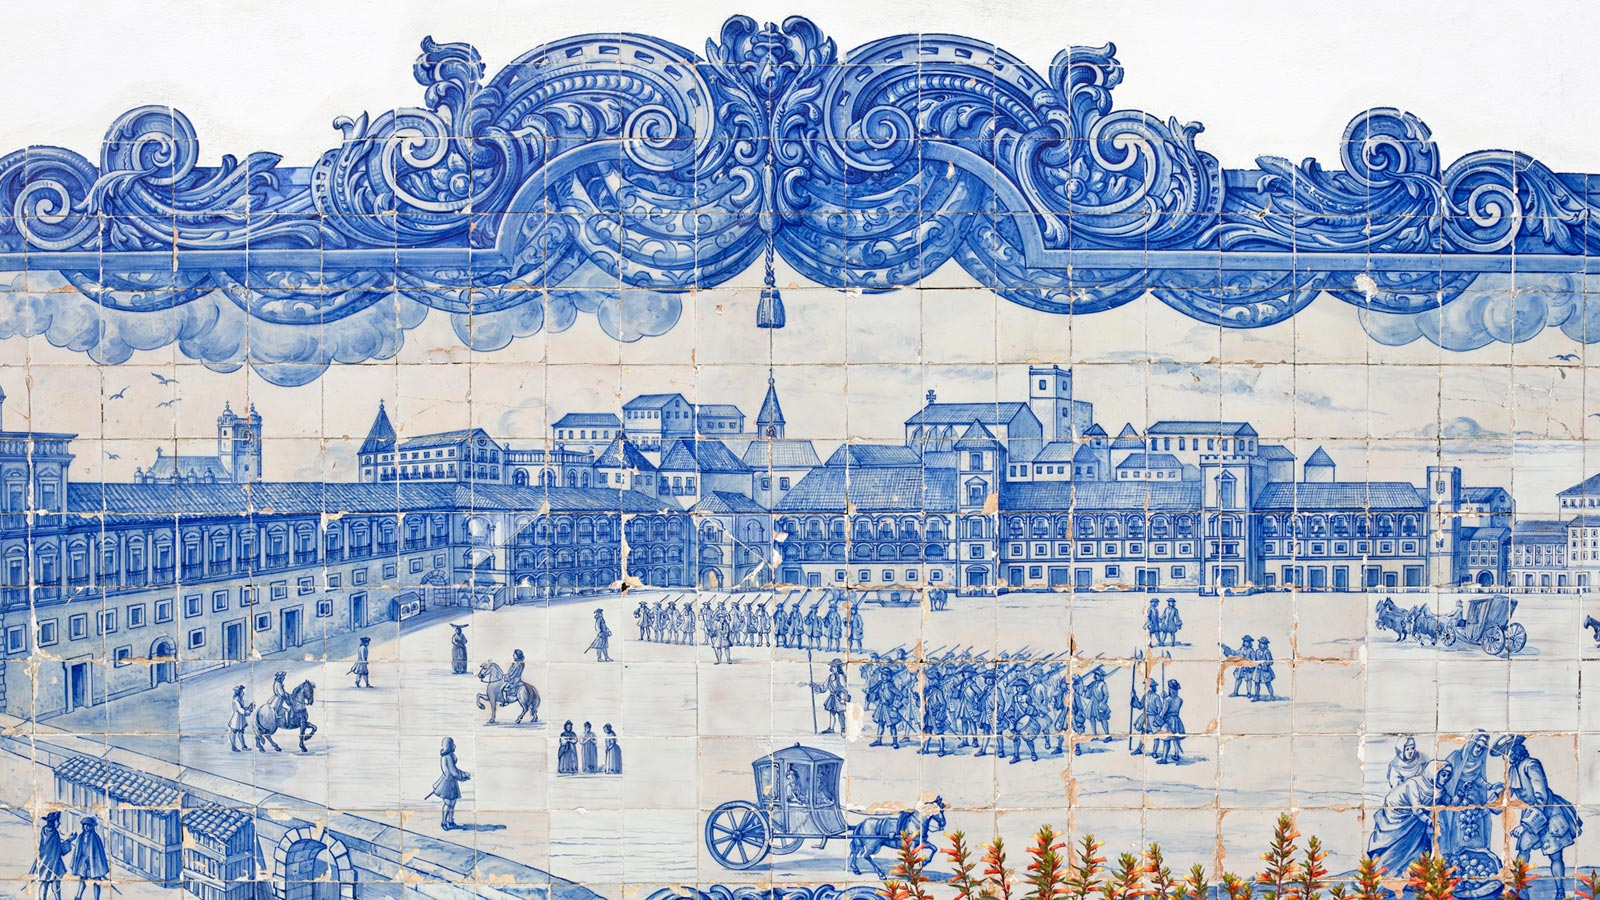 Portuguese Azulejos in Lisbon, photo credit to iStock.